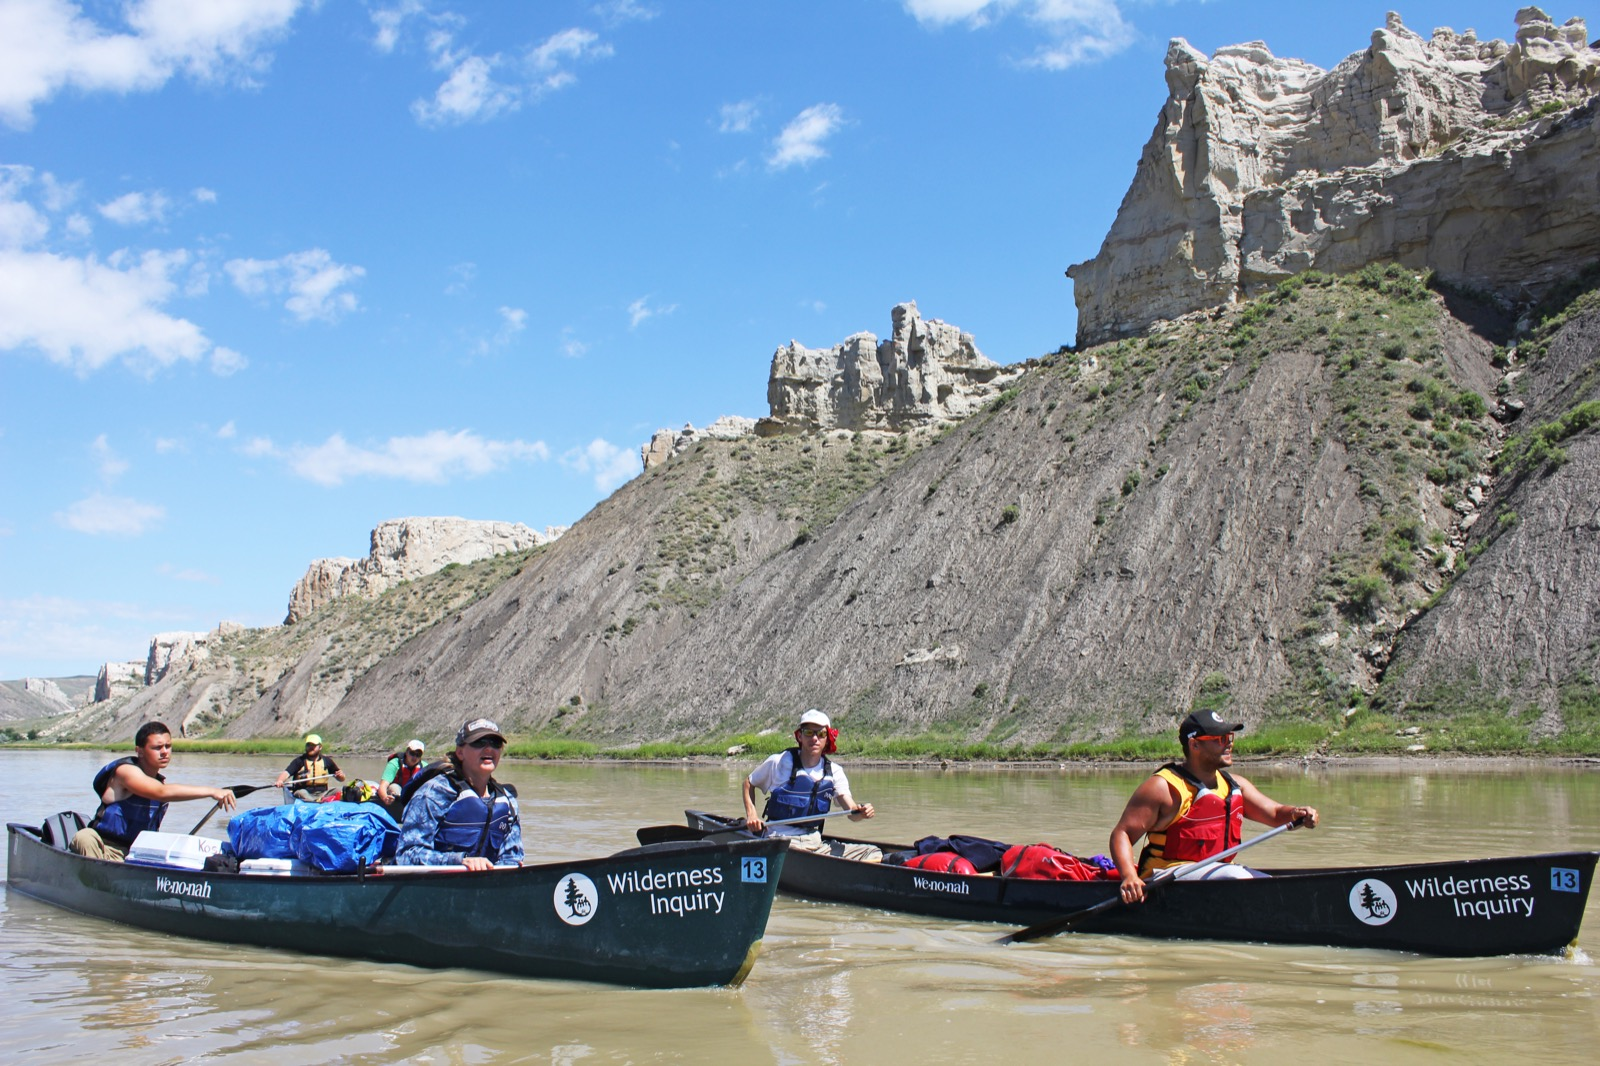 Participants in three dark green tandem canoes enjoy a sunny day of paddling below the Missouri River's towering canyon walls.